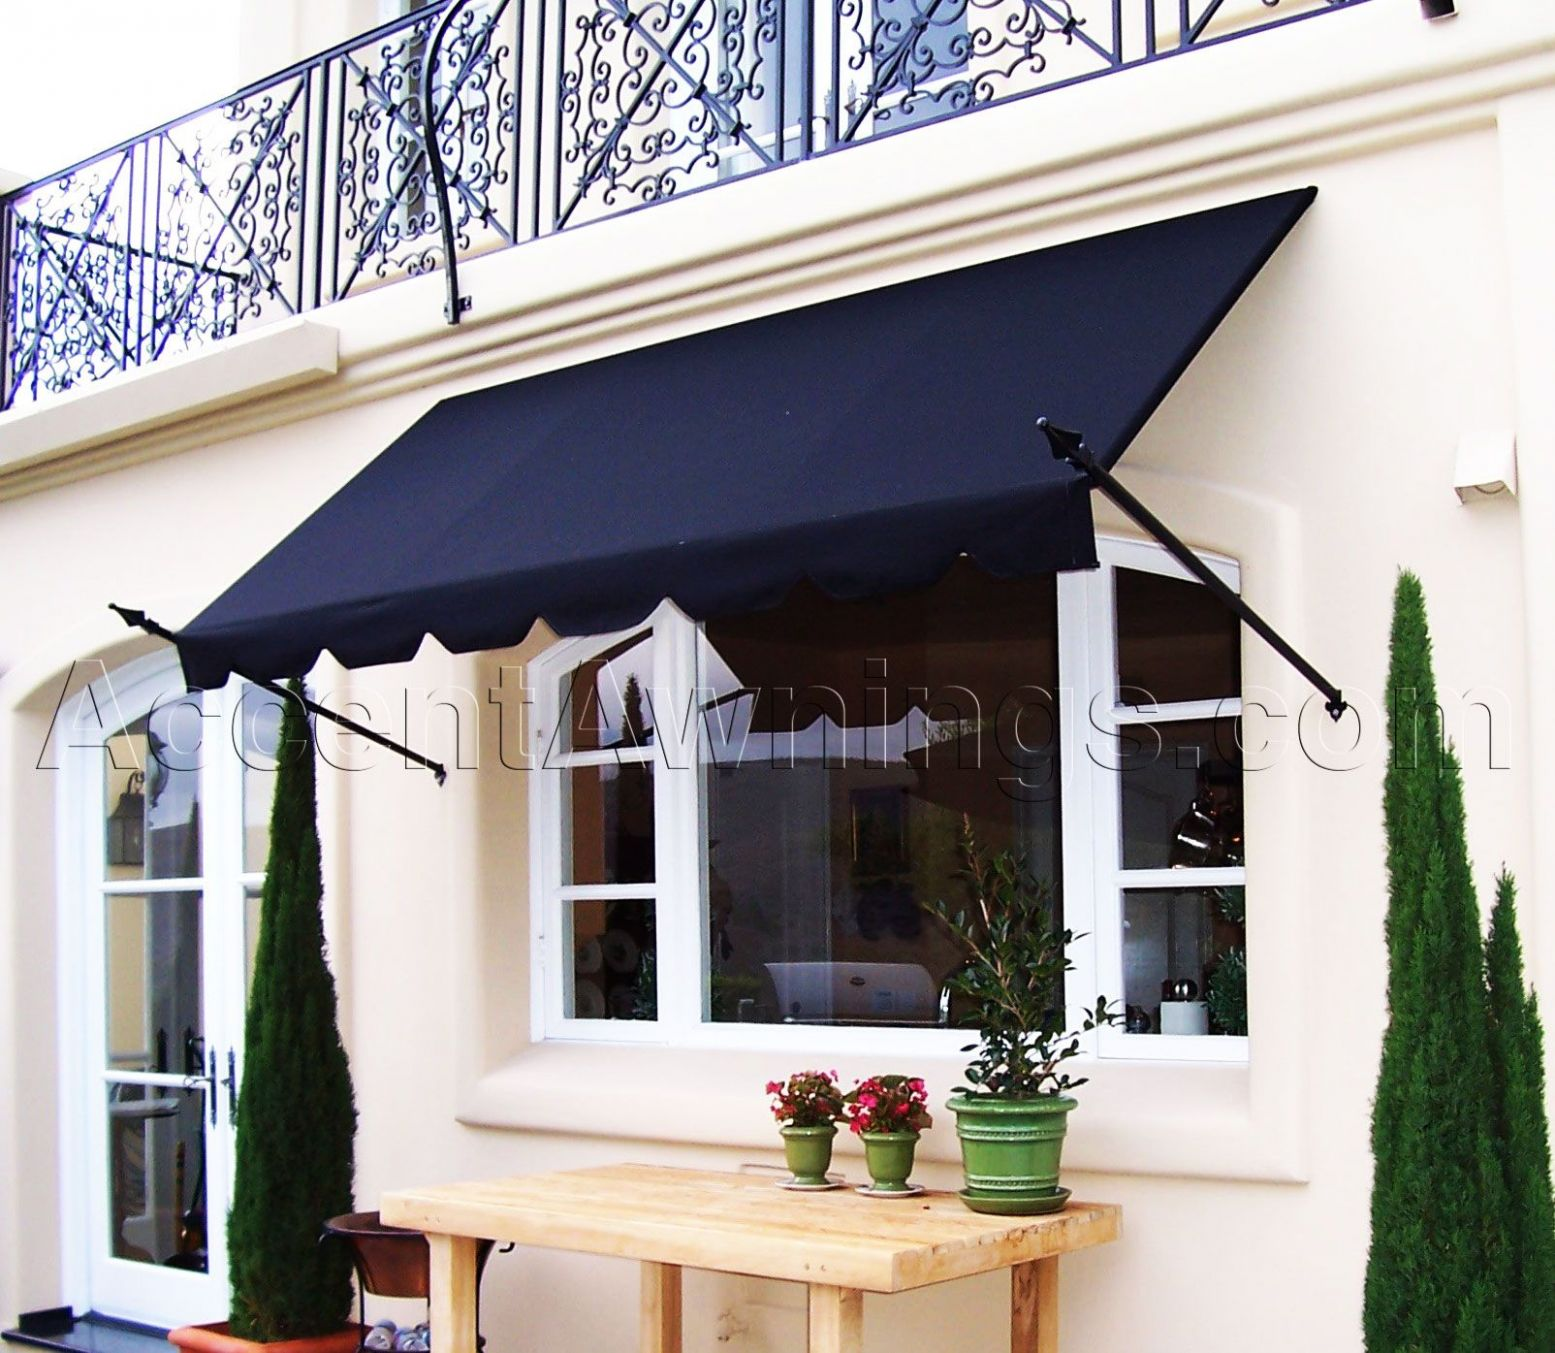 Decorative and Spear Stationary Awnings | Window shutters indoor ...